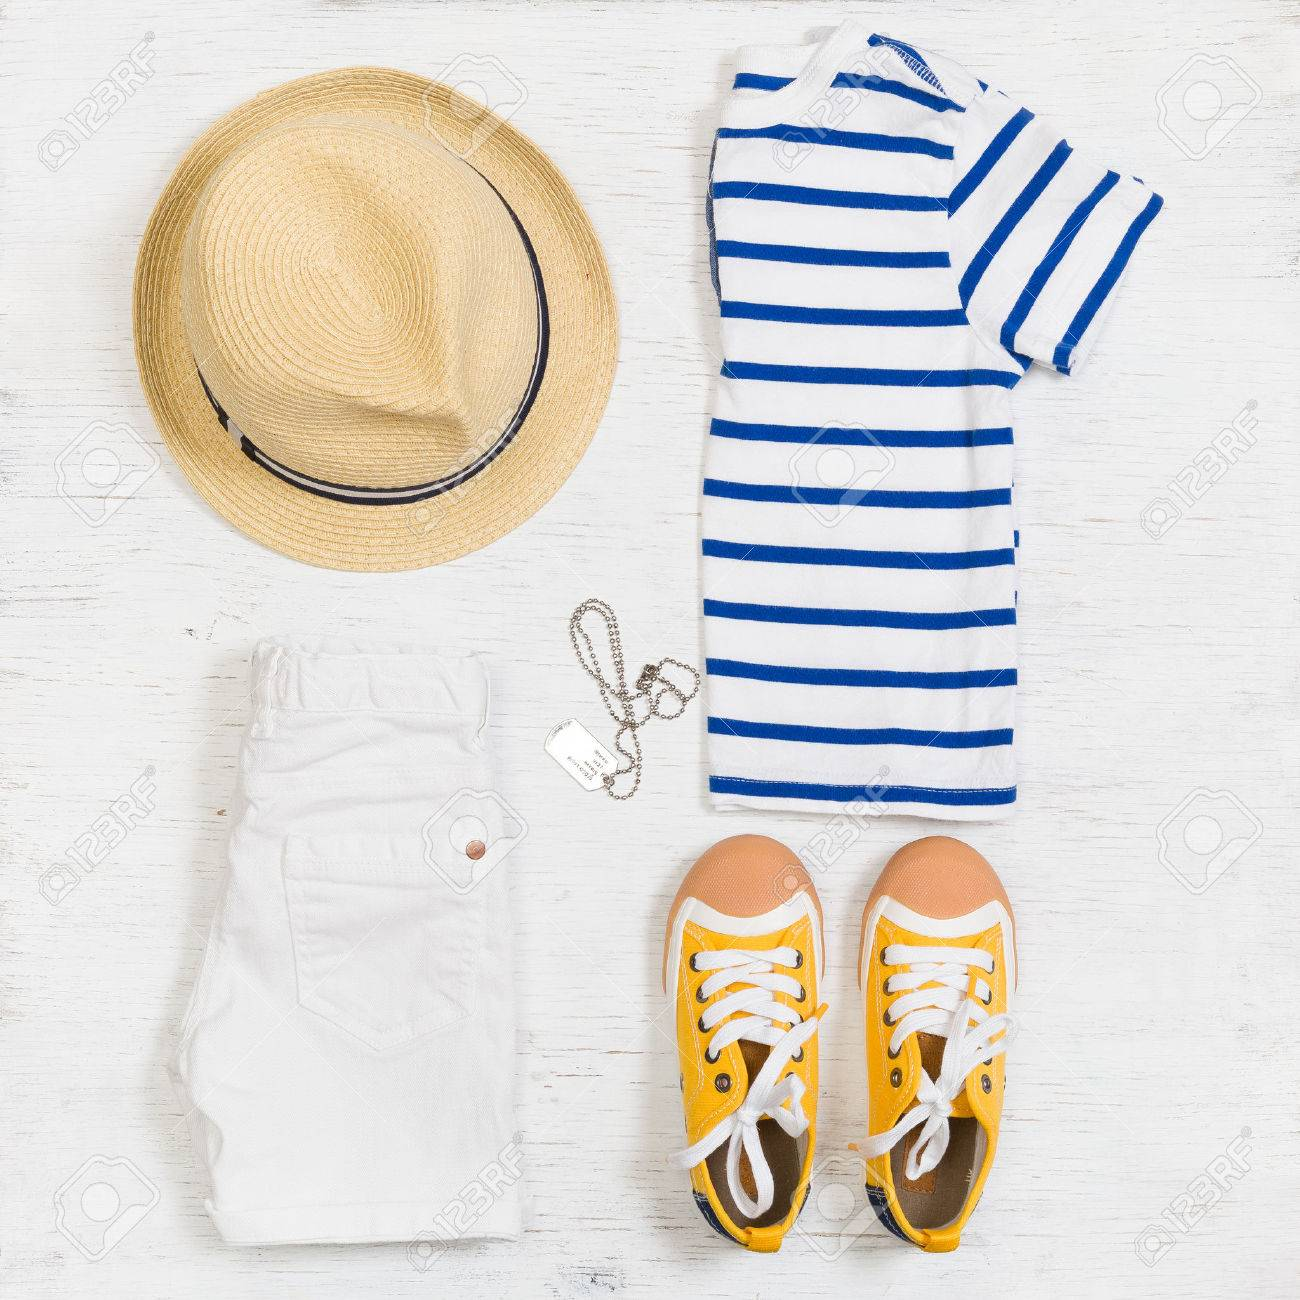 9fca5a8ecc5c Summer Clothes Stock Photos And Images - 123RF